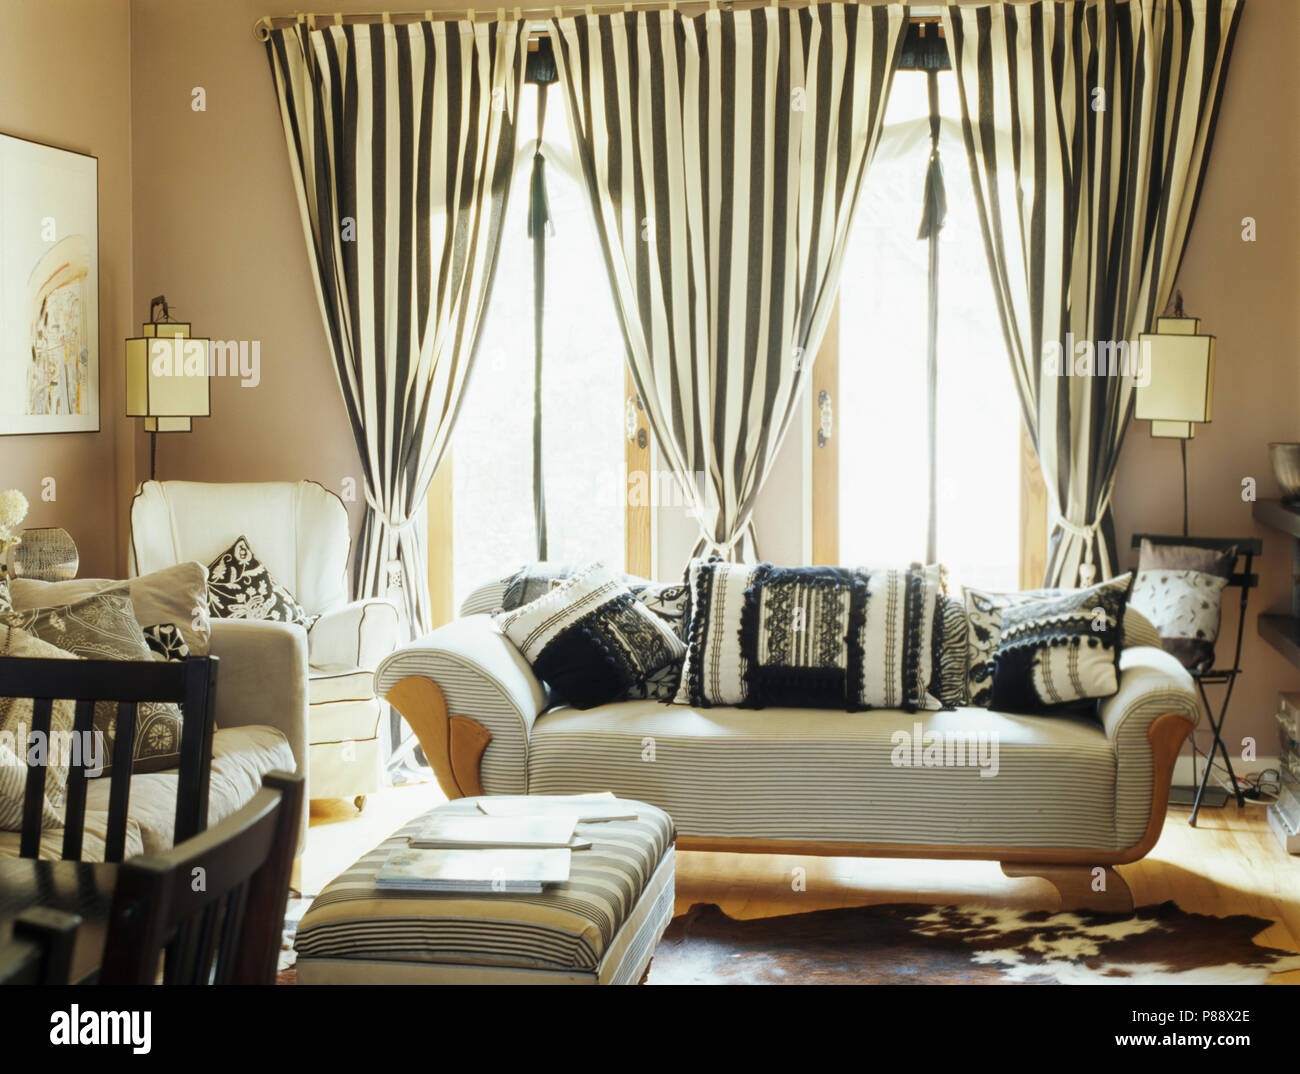 Black Stripe Curtains Black White Striped Curtains On Glass Doors Behind White Sofa With